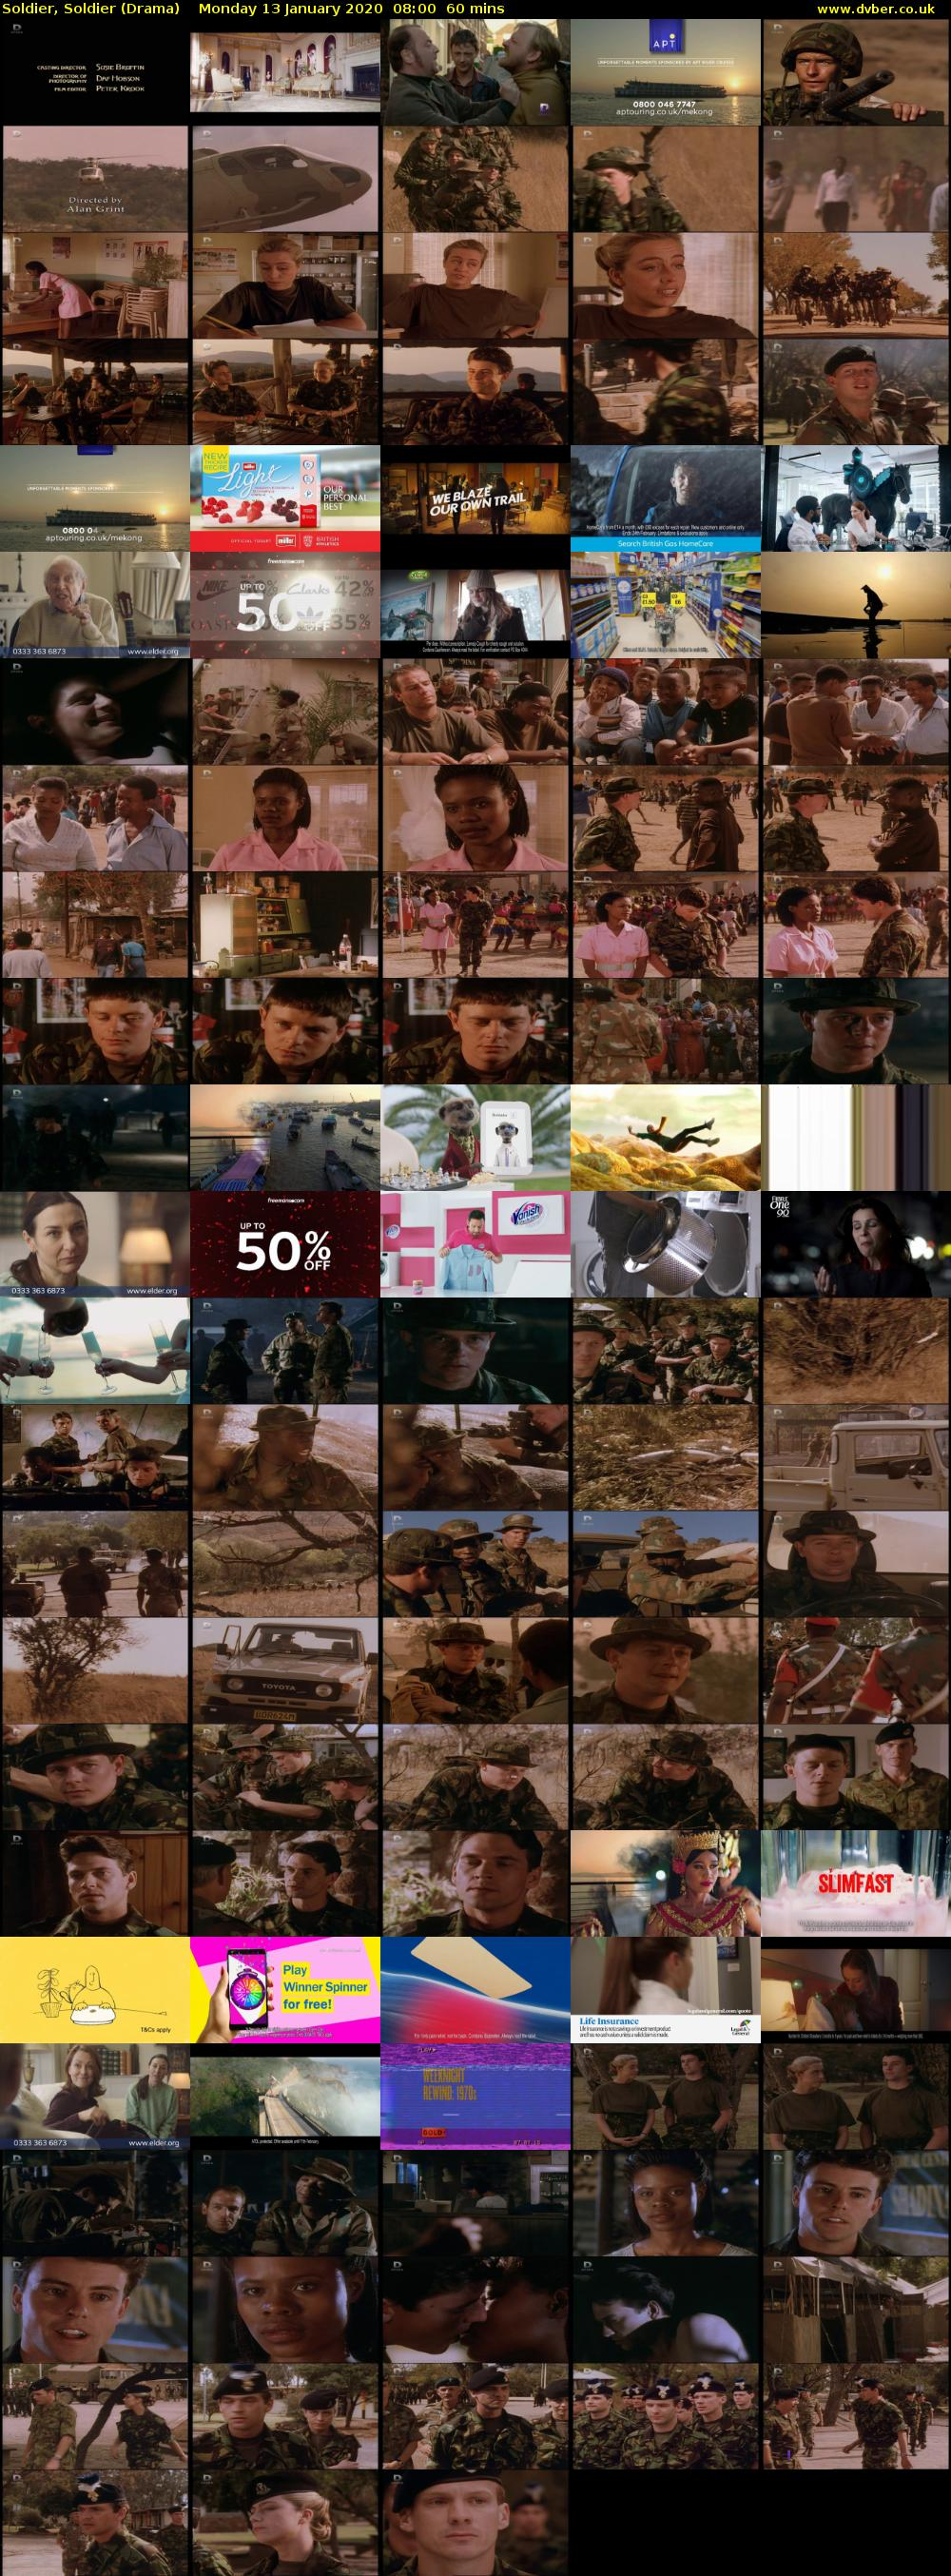 Soldier, Soldier (Drama) Monday 13 January 2020 08:00 - 09:00